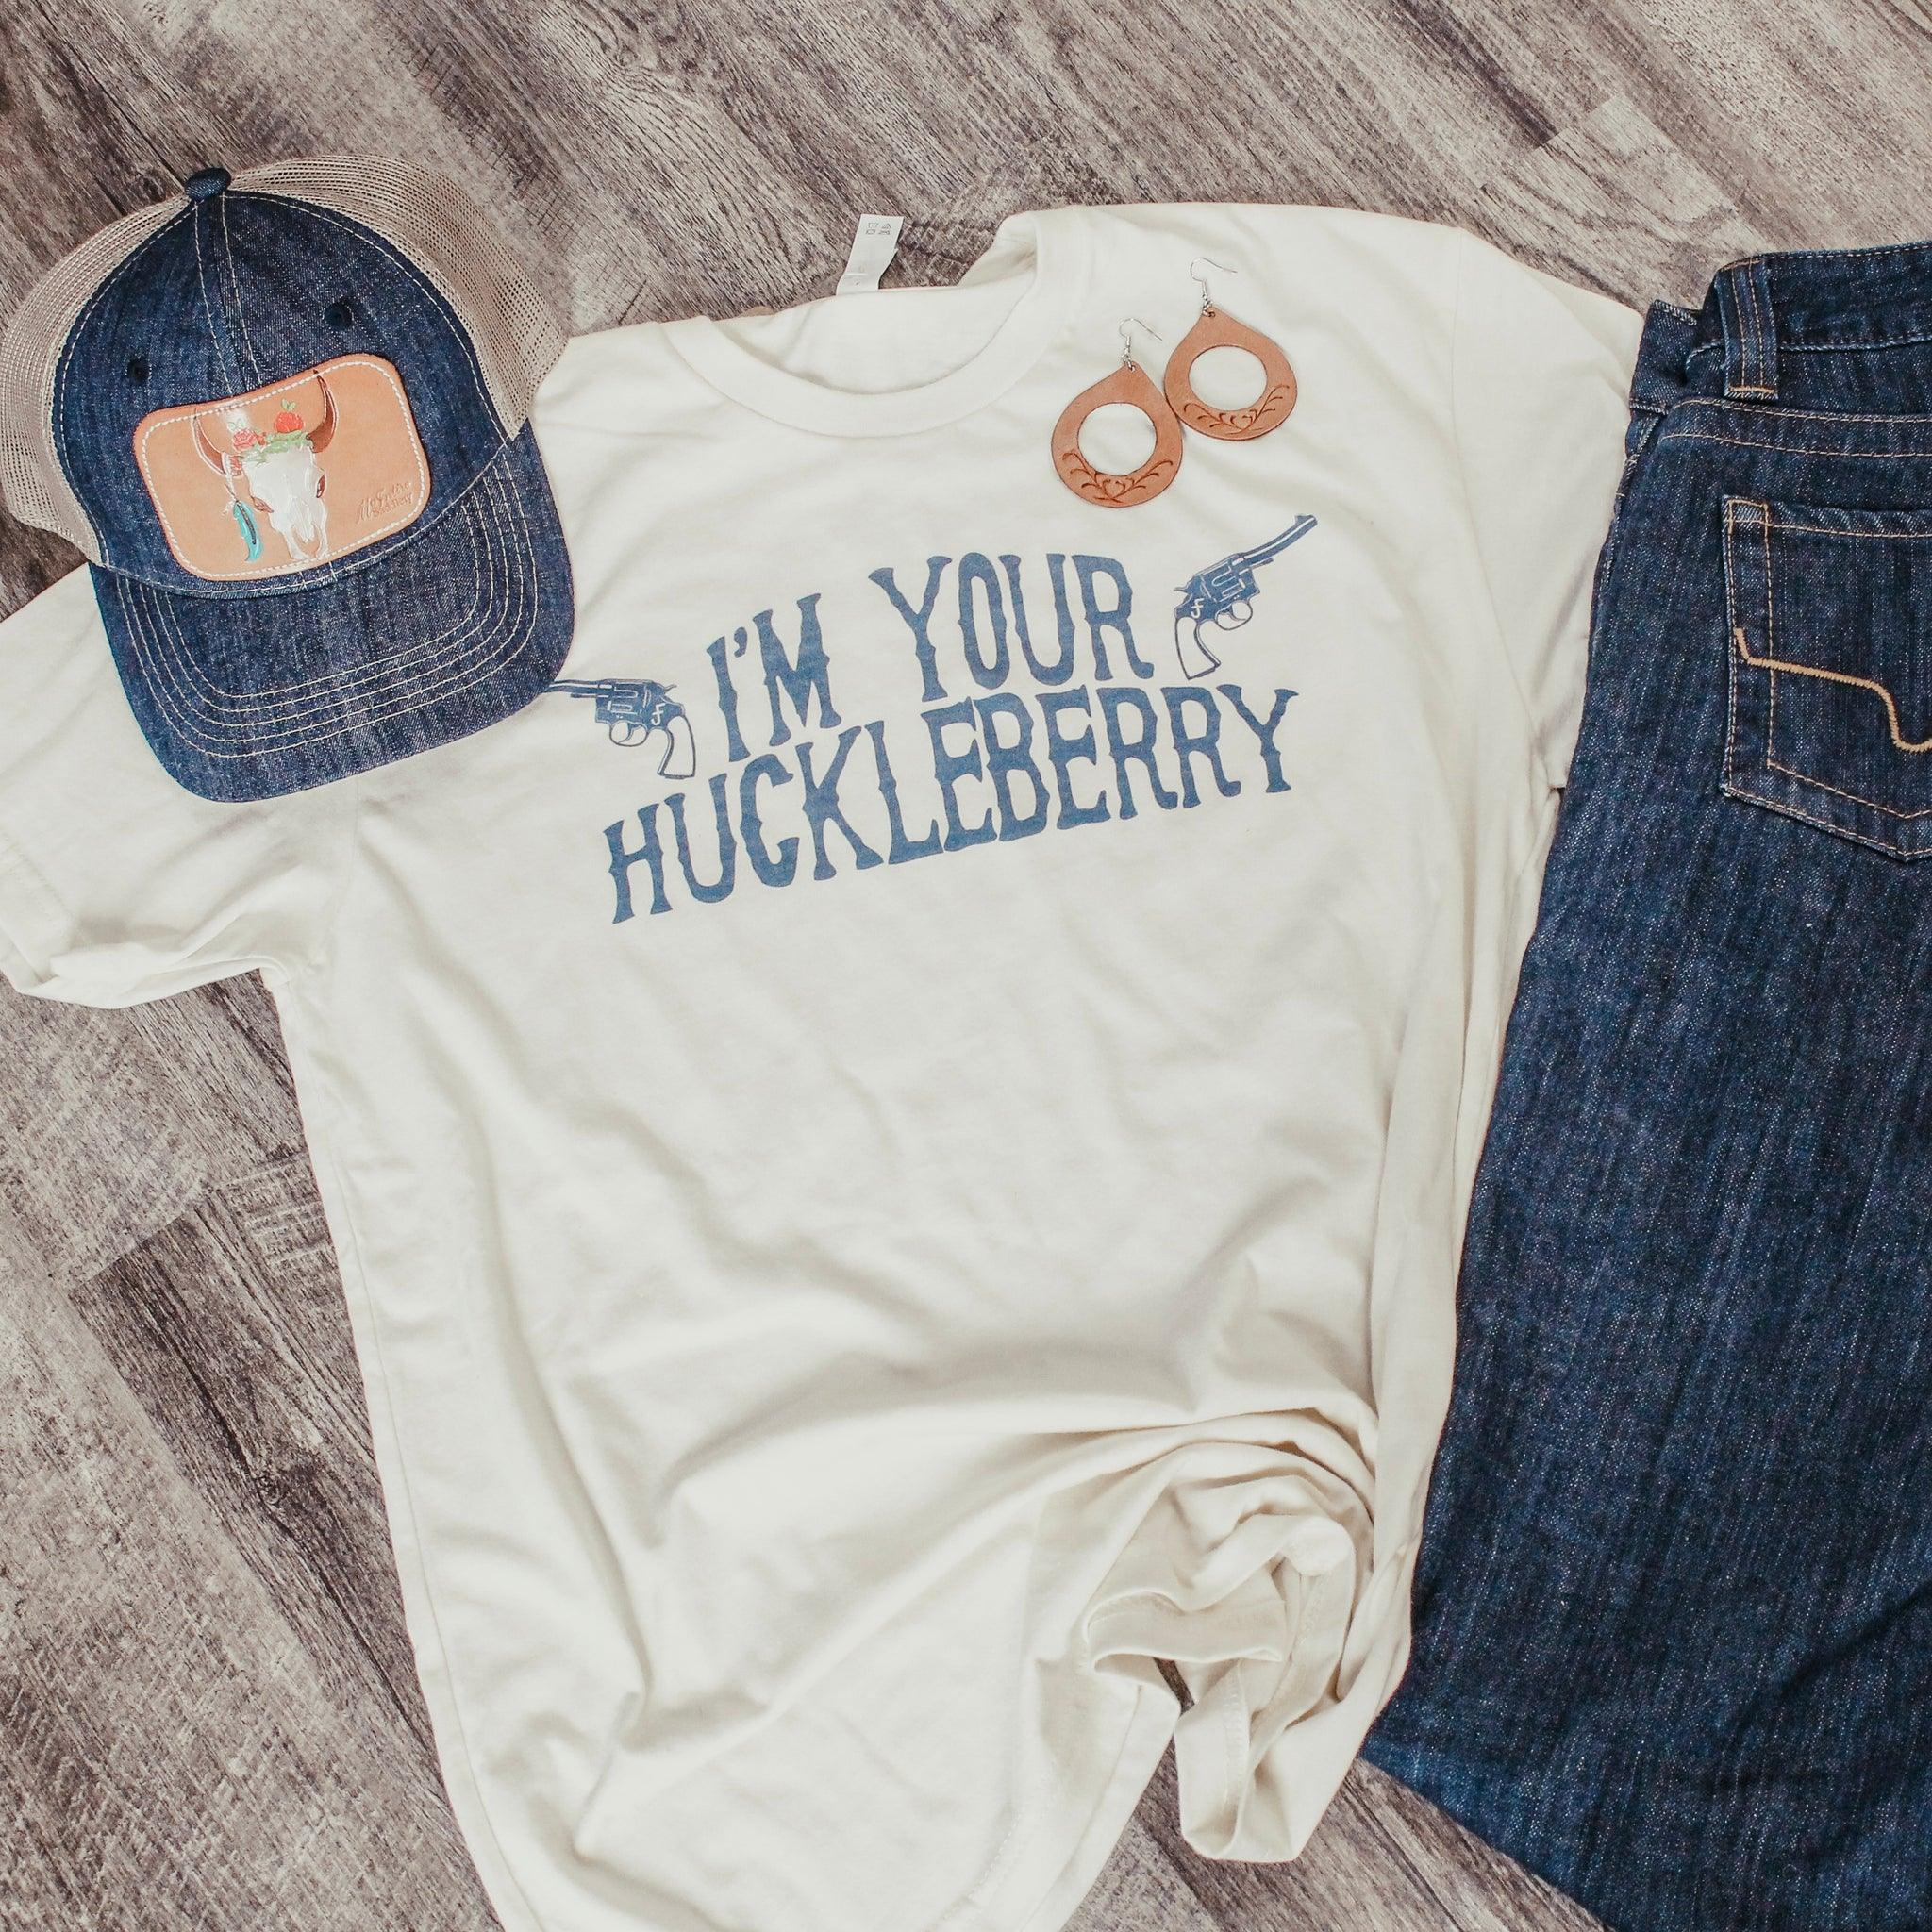 I'm Your Huckleberry Tee